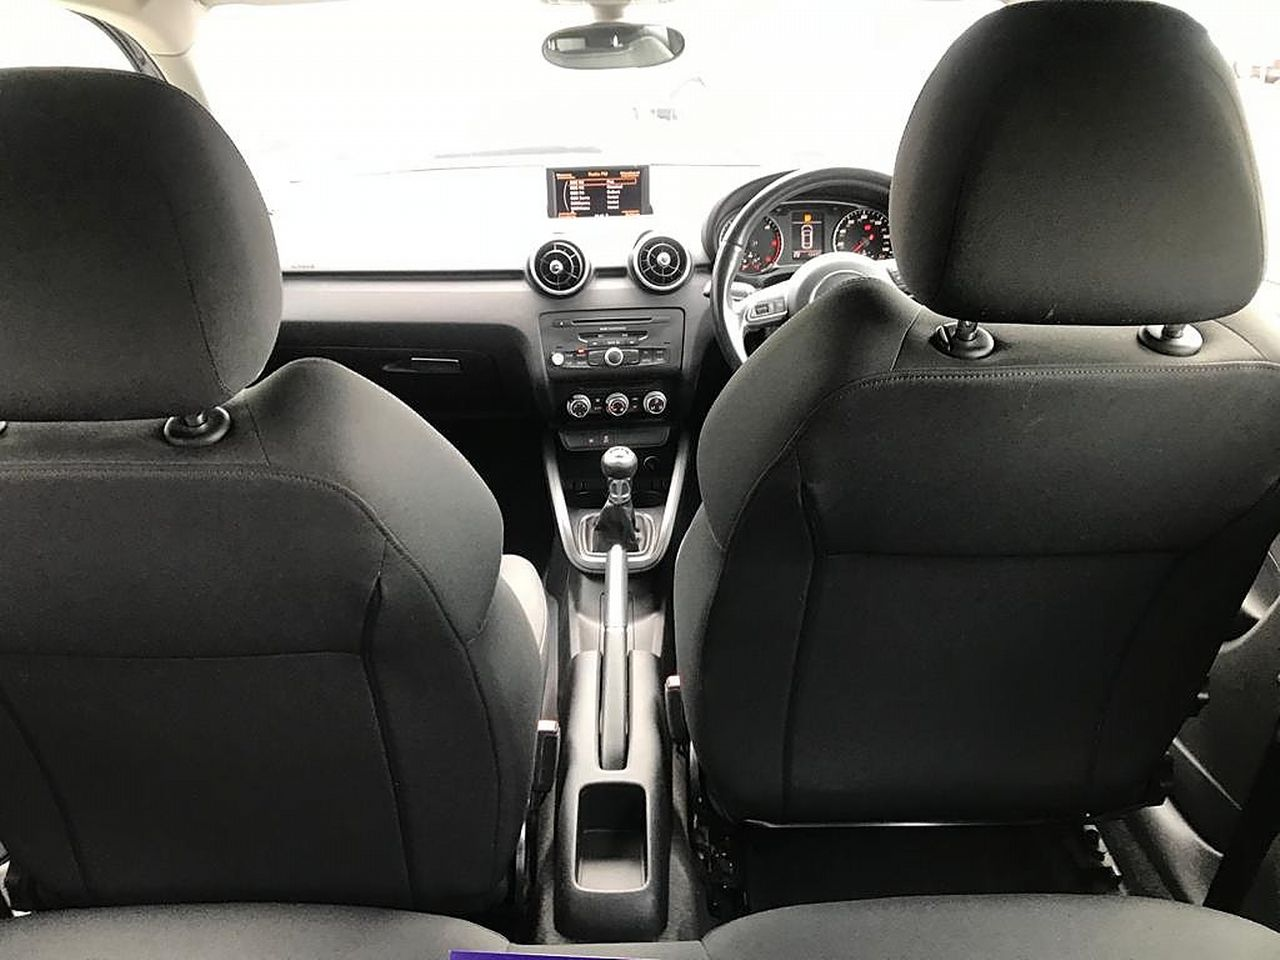 2011 AUDI A1 1.6 TDI Sport 105PS - Picture 17 of 19